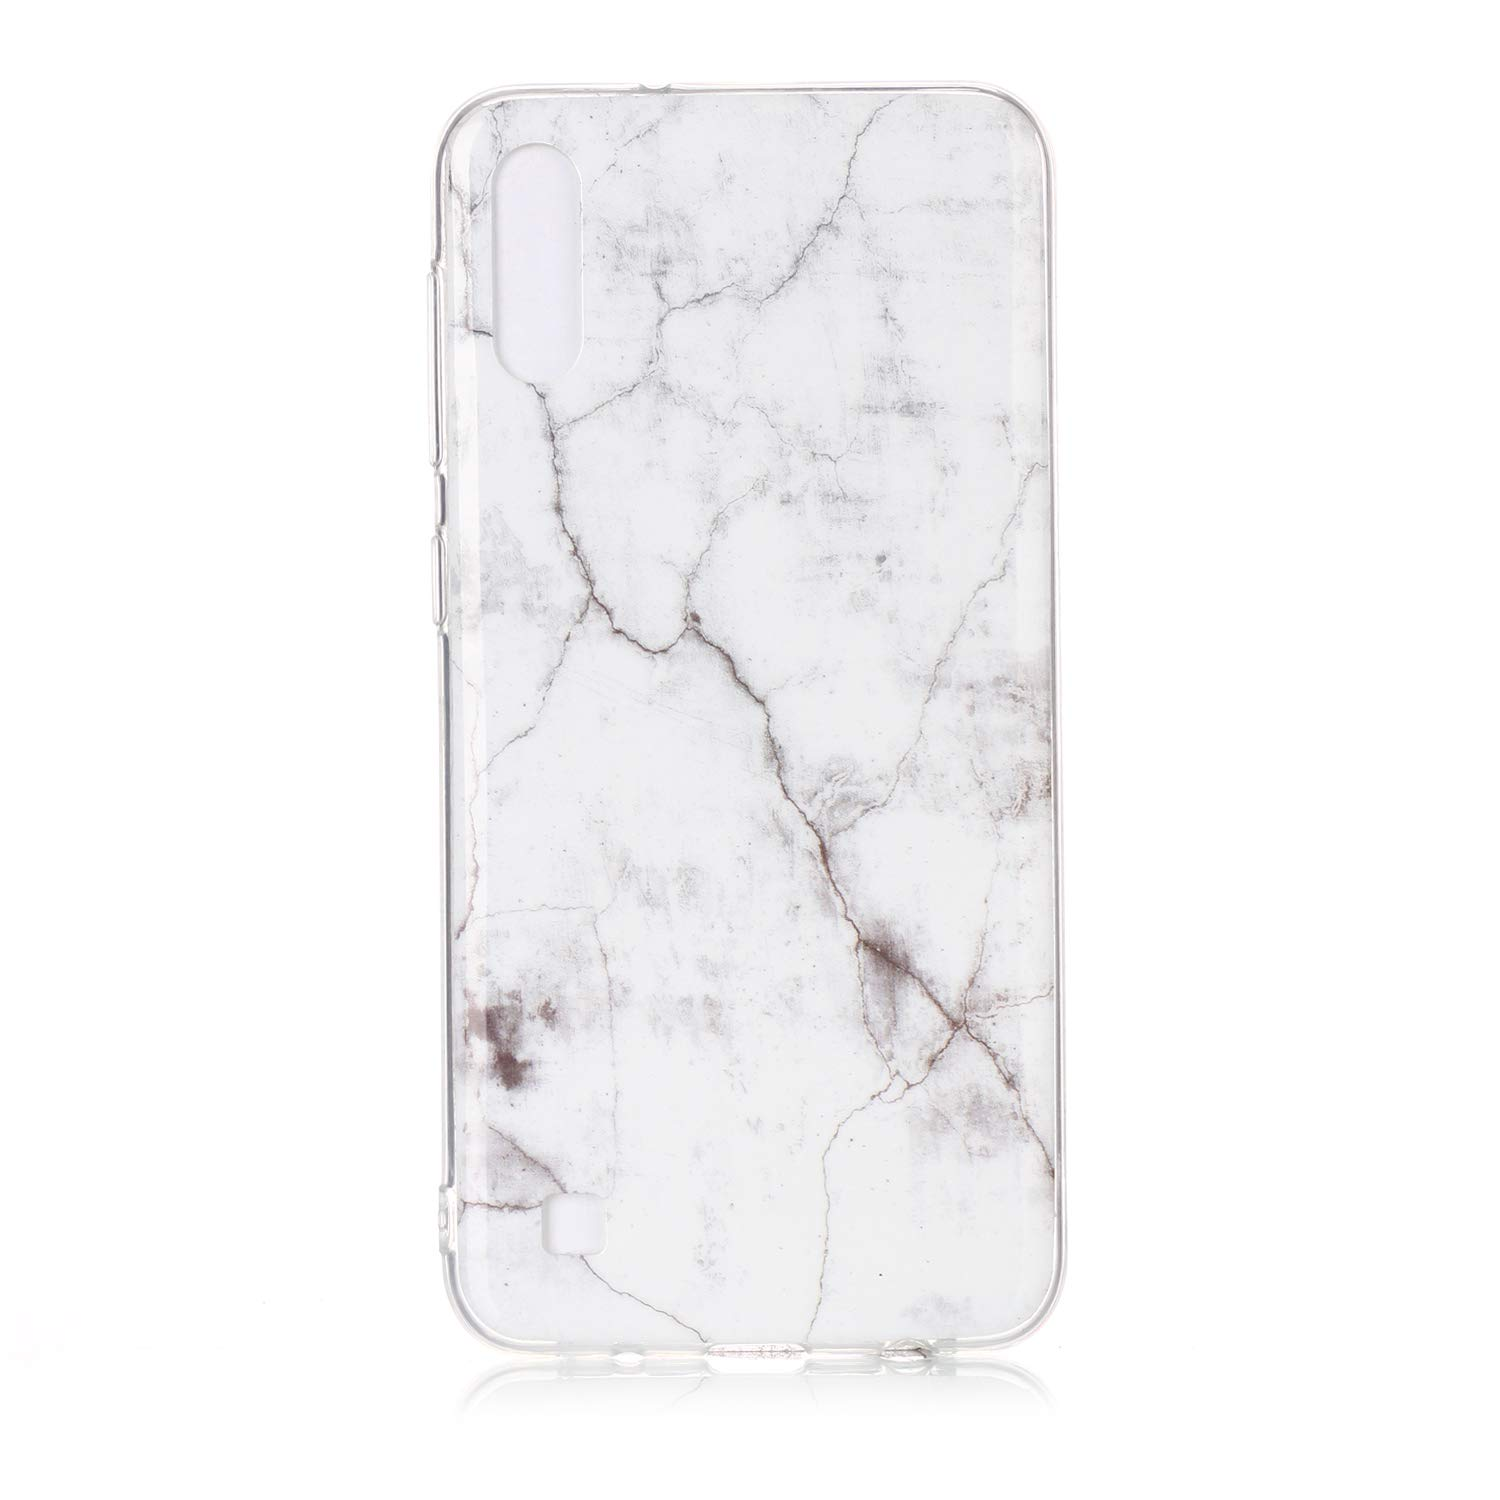 HopMore Compatible with Case Samsung Galaxy A10 2019 Silicone Creative Marble Design with Clear Bumper Shockproof Case Protective Cover Thin Gel Slim Bumper for Girls Woman Men Blue